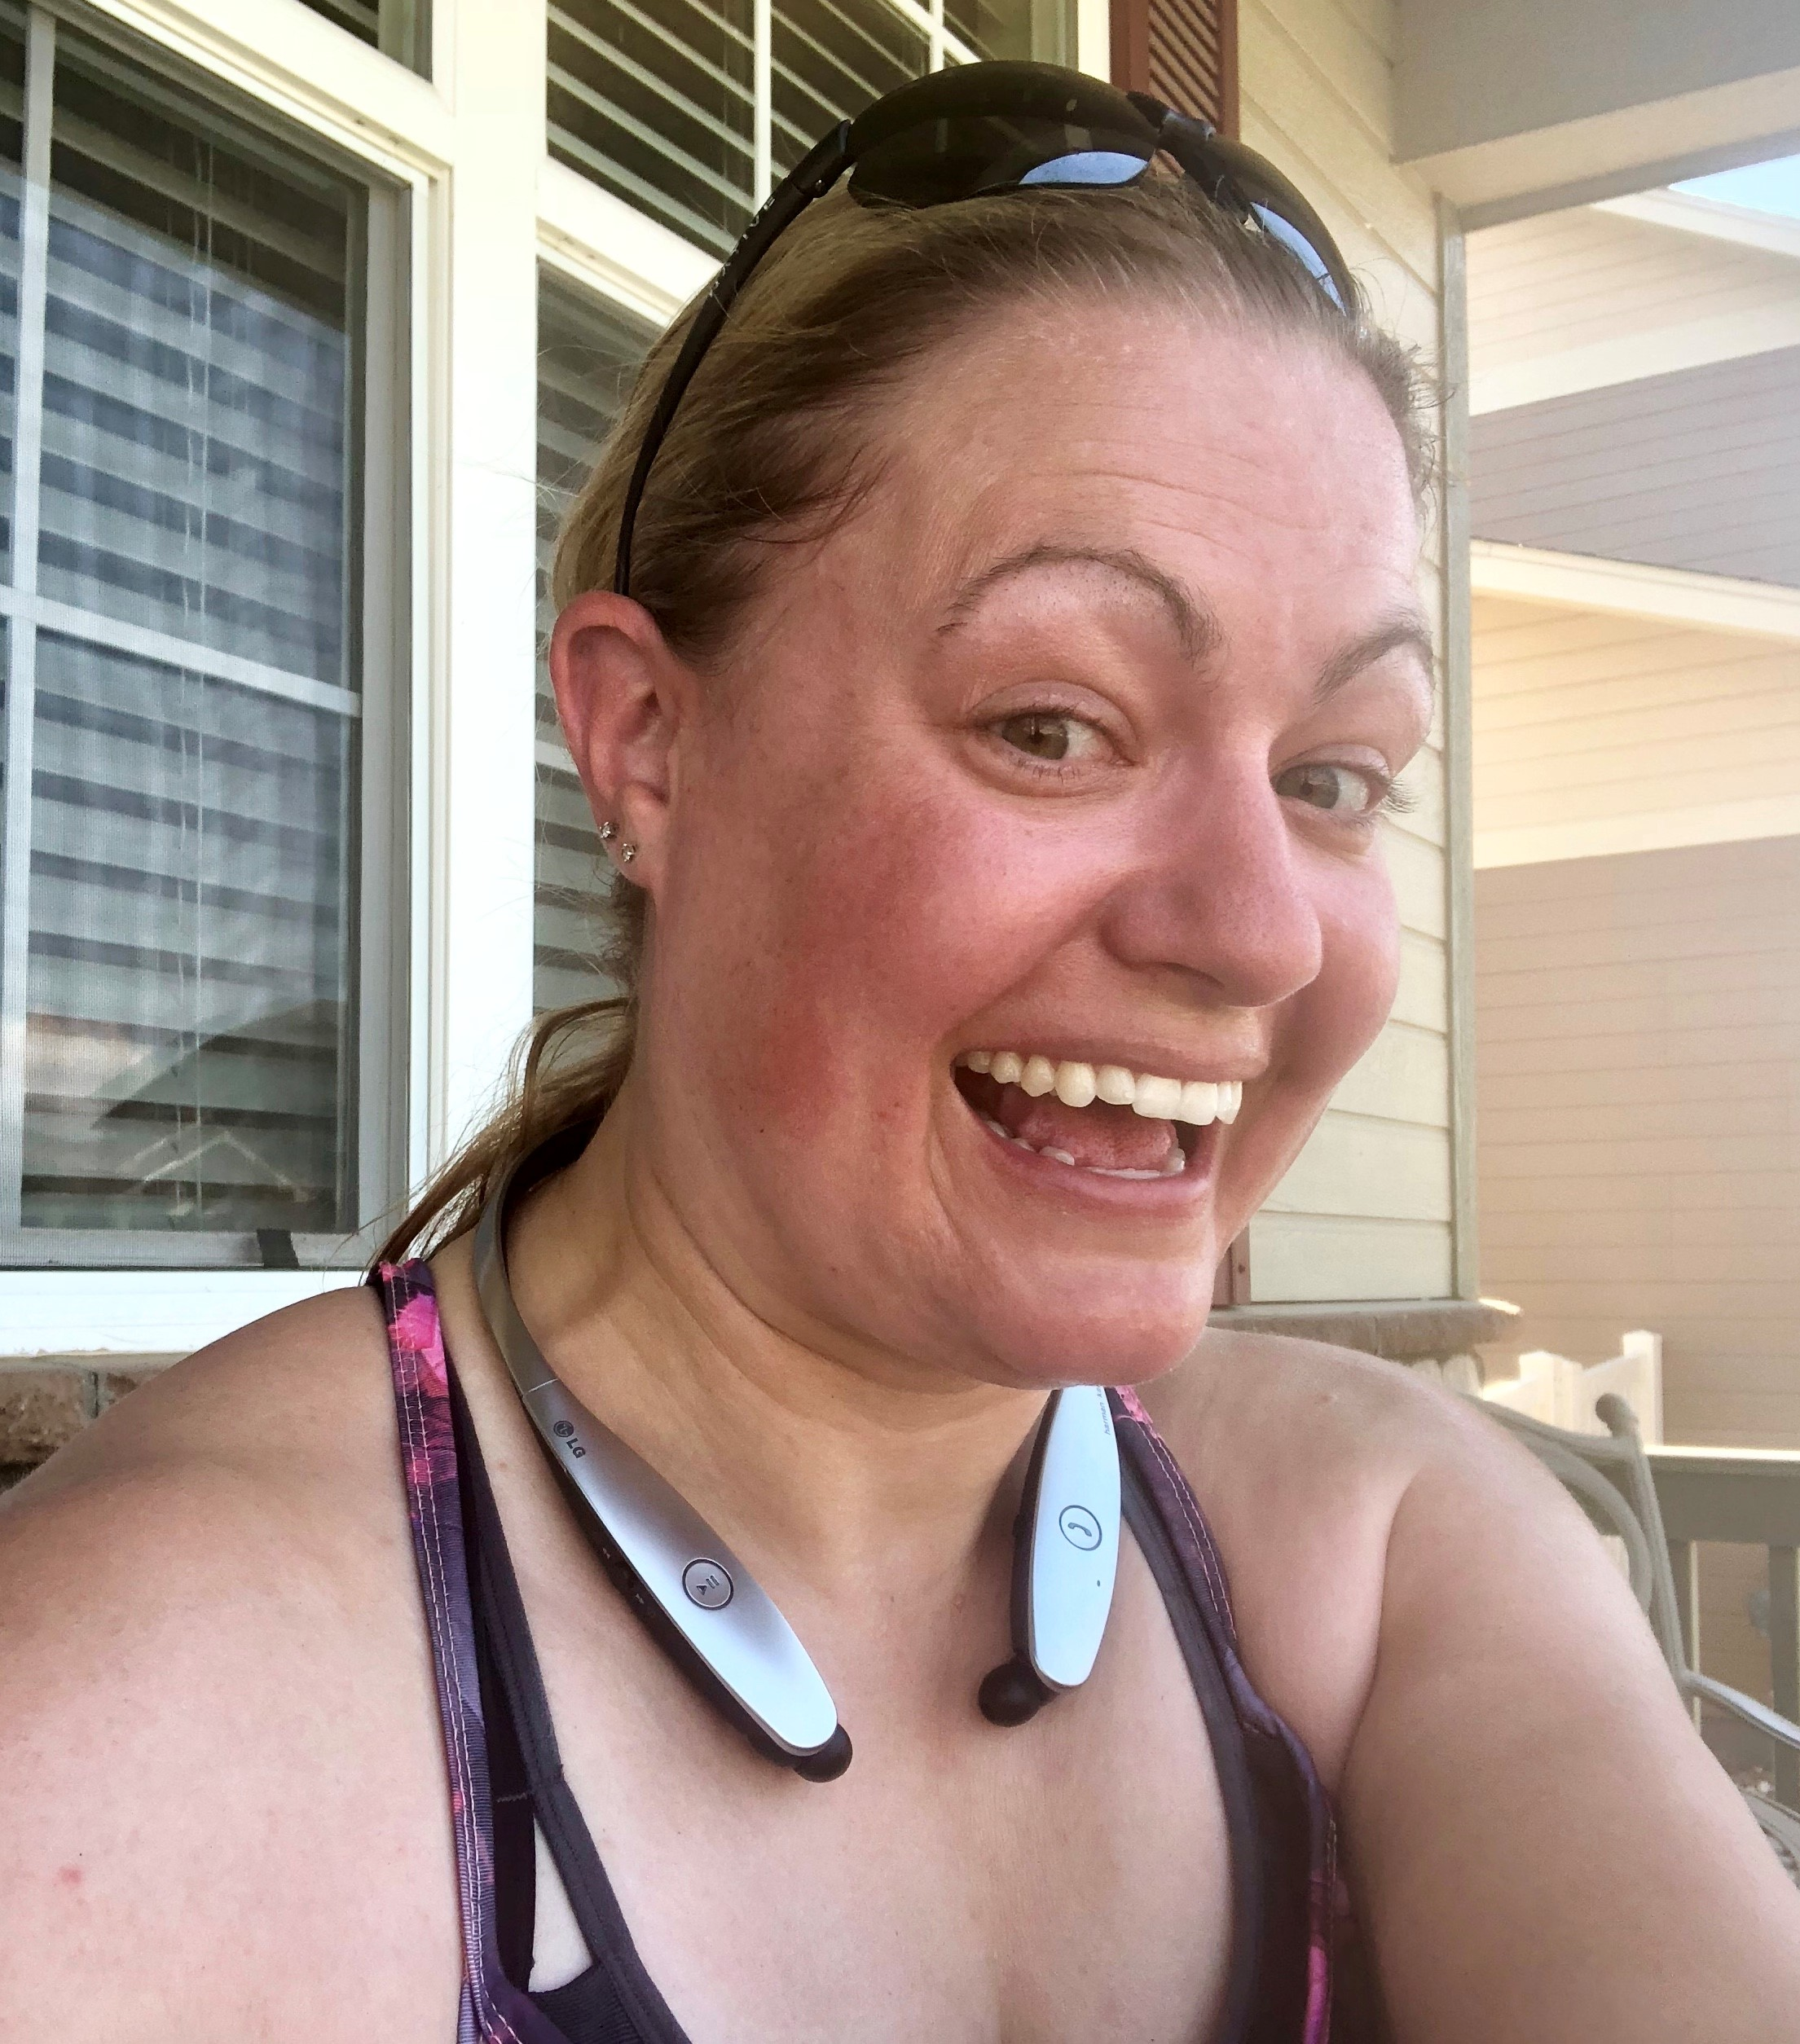 Happy sweaty person after workout on porch.